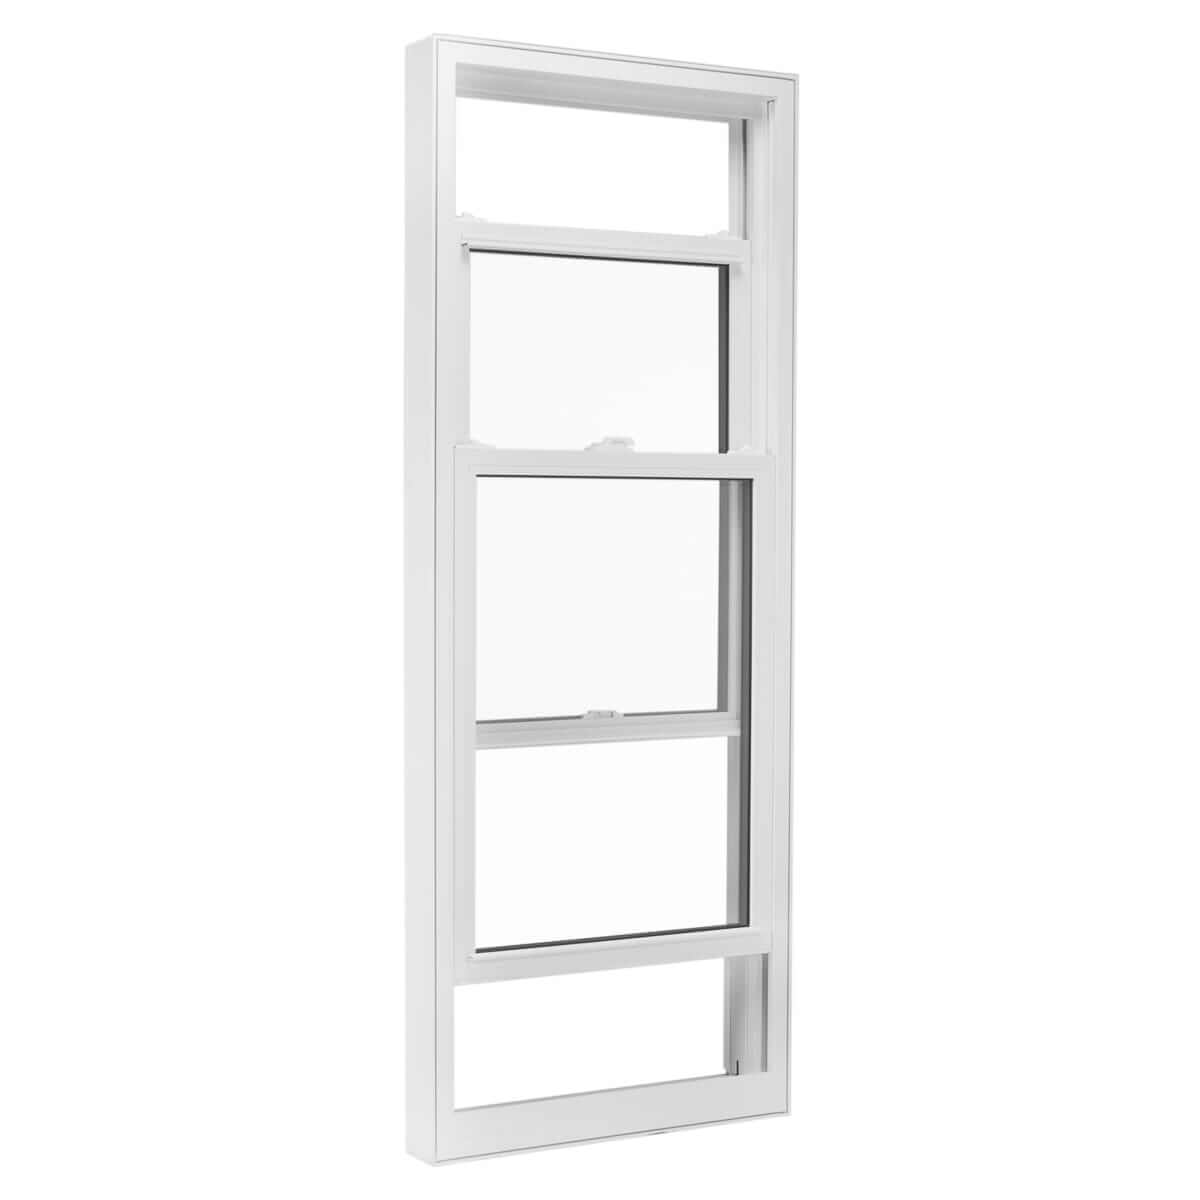 Double Hung Window on White Background